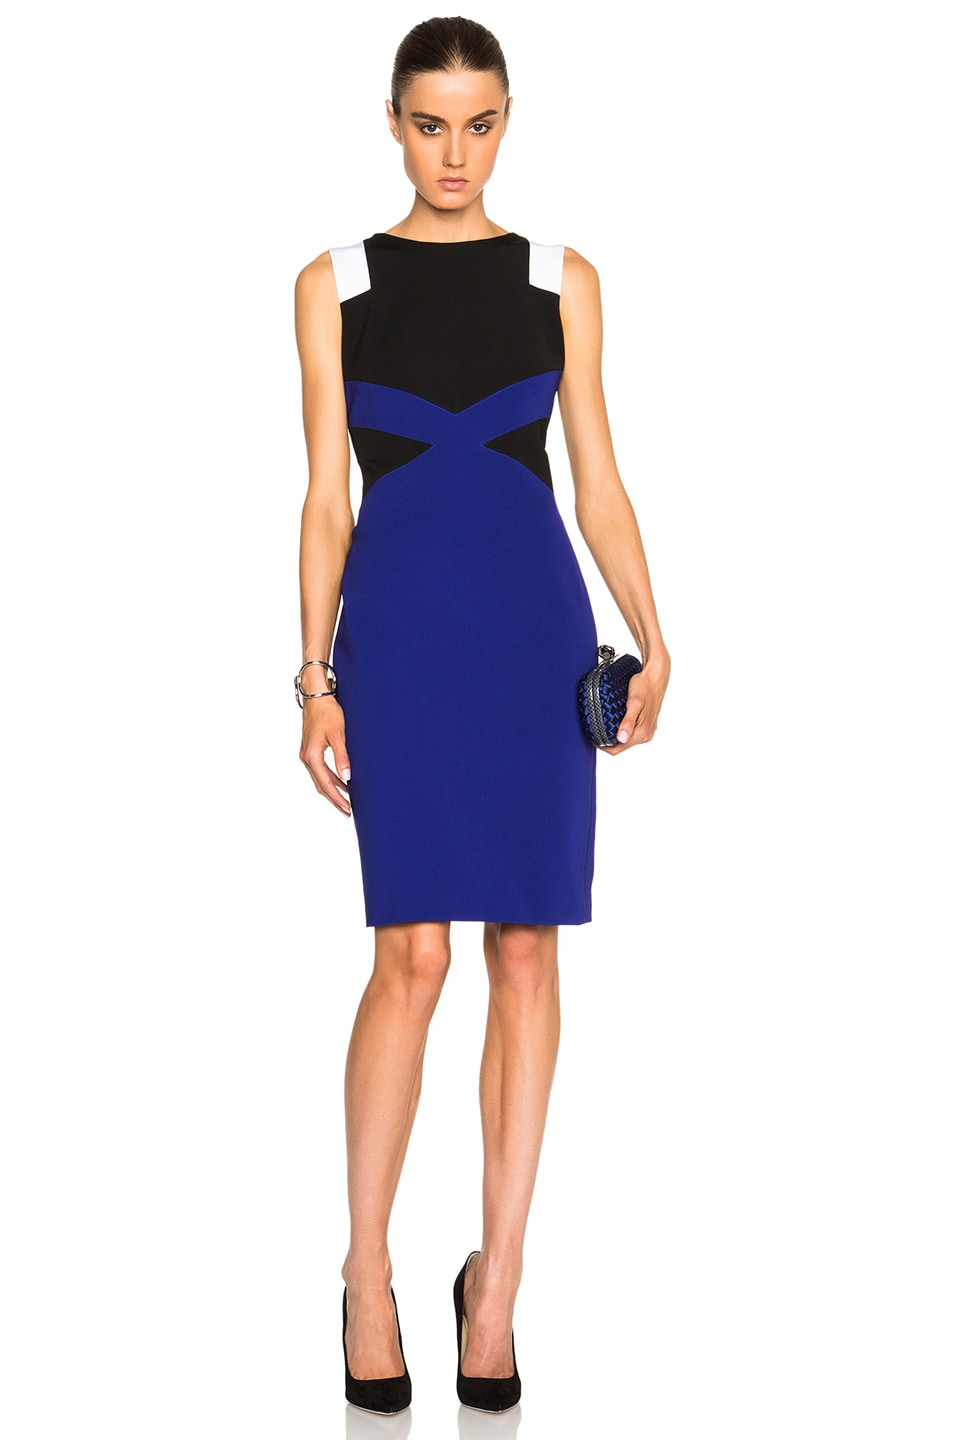 Image 1 of VERSACE Sleeveless Dress in Black, Violet & White